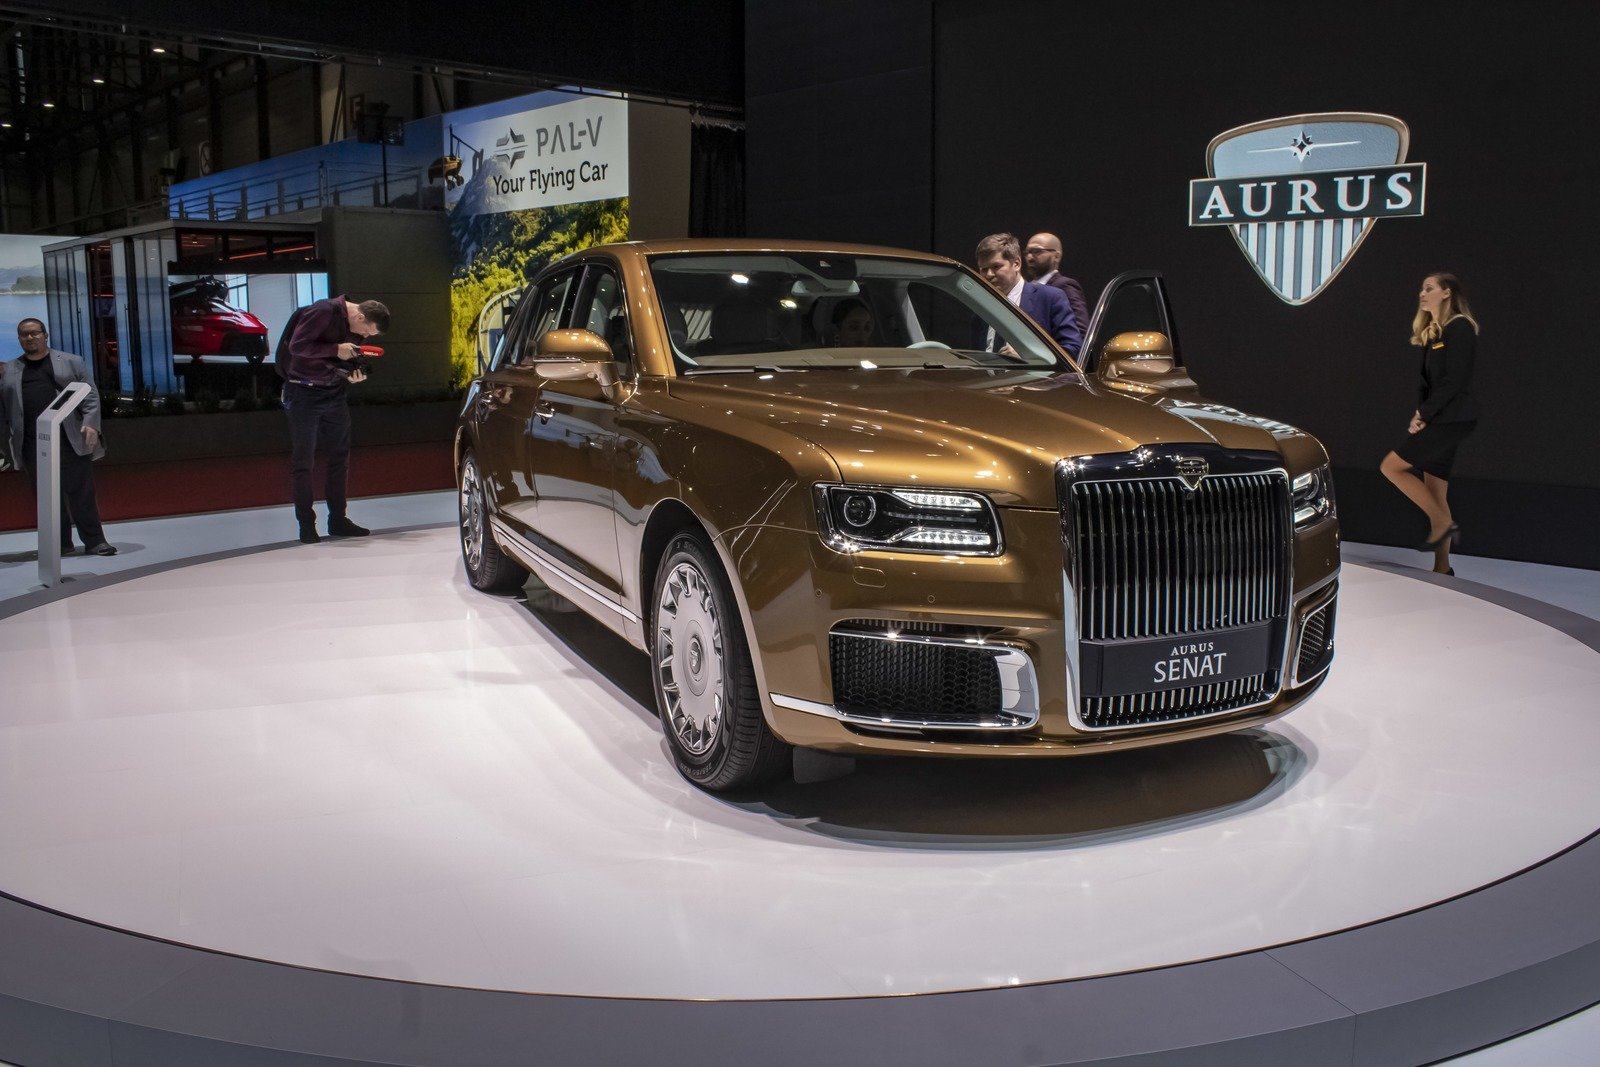 2019 Aurus Senat Top Speed